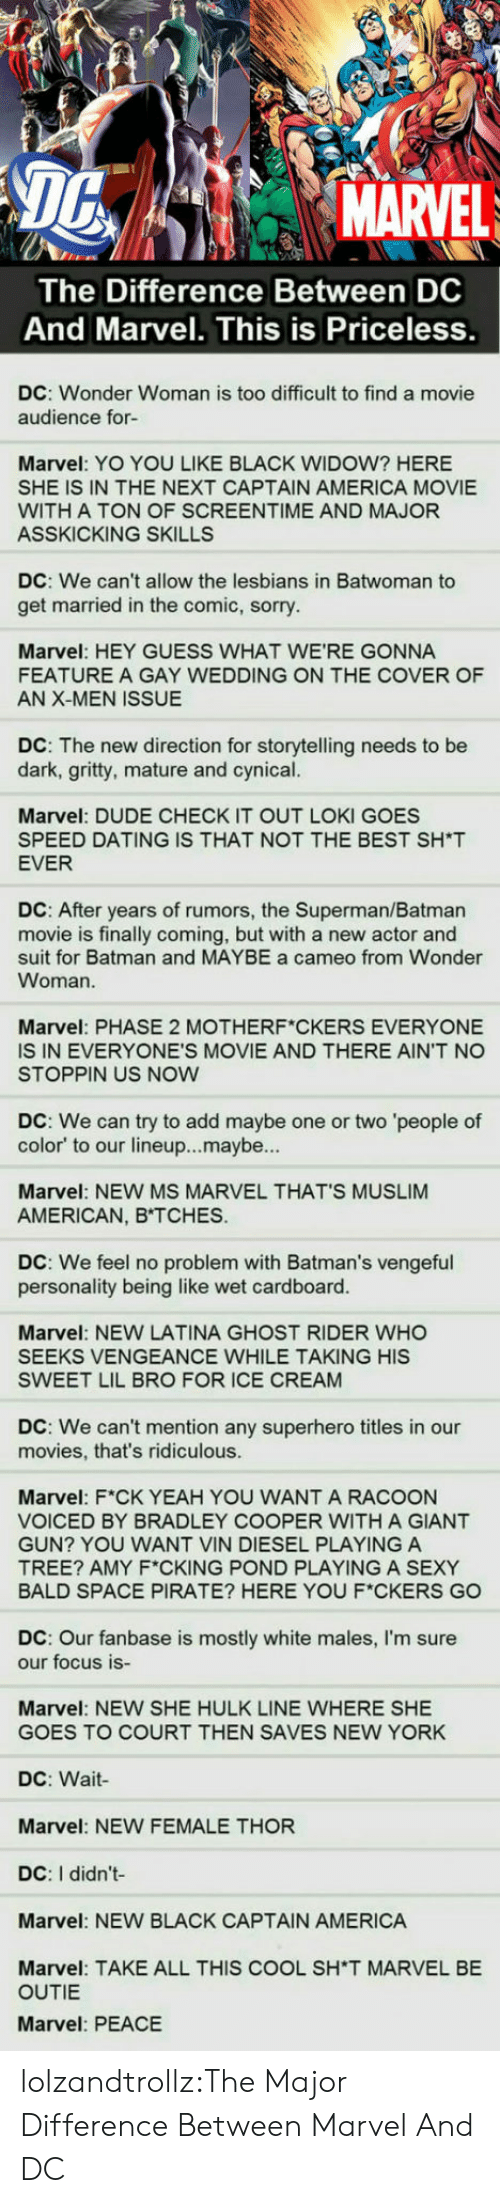 America, Batman, and Dating: MARVEL  The Difference Between DC  And Marvel. This is Priceless.  DC: Wonder Woman is too difficult to find a movie  audience for-  Marvel: YO YOU LIKE BLACK WIDOW? HERE  SHE IS IN THE NEXT CAPTAIN AMERICA MOVIE  WITH A TON OF SCREENTIME AND MAJOR  ASSKICKING SKILLS  DC: We can't allow the lesbians in Batwoman to  get married in the comic, sorry  Marvel: HEY GUESS WHAT WE'RE GONNA  FEATURE A GAY WEDDING ON THE COVER OF  AN X-MEN ISSUE  DC: The new direction for storytelling needs to be  dark, gritty, mature and cynical.  Marvel: DUDE CHECK IT OUT LOKI GOES  SPEED DATING IS THAT NOT THE BEST SH*T  EVER  DC: After years of rumors, the Superman/Batman  m  suit for Batman and MAYBE a cameo from Wonder  Woman.  is finally coming, but with a new a  and  Marvel: PHASE 2 MOTHERF CKERS EVERYONE  IS IN EVERYONE'S MOVIE AND THERE AIN'T NO  STOPPIN US NOW  DC: We can try to add maybe one or two 'people of  color' to our lineup...maybe...  Marvel: NEW MS MARVEL THAT'S MUSLIM  AMERICAN, B TCHES.  DC: We feel no problem with Batman's vengeful  personality being like wet cardboard.  Marvel: NEW LATINA GHOST RIDER WHO  SEEKS VENGEANCE WHILE TAKING HIS  SWEET LIL BRO FOR ICE CREAM  DC: We can't mention any superhero titles in our  movies, that's ridiculous.  Marvel: F*CK YEAH YOU WANT A RACOON  VOICED BY BRADLEY COOPER WITH A GIANT  GUN? YOU WANT VIN DIESEL PLAYING A  TREE? AMY F*CKING POND PLAYING A SEXY  BALD SPACE PIRATE? HERE YOU F*CKERS GO  DC: Our fanbase is mostly white males, l'm sure  our focus is-  Marvel: NEW SHE HULK LINE WHERE SHE  GOES TO COURT THEN SAVES NEW YORK  DC:Wait-  Marvel: NEW FEMALE THOR  DC: I didn't-  Marvel: NEW BLACK CAPTAIN AMERICA  Marvel: TAKE ALL THIS COOL SH*T MARVEL BE  OUTIE  Marvel: PEACE lolzandtrollz:The Major Difference Between Marvel And DC